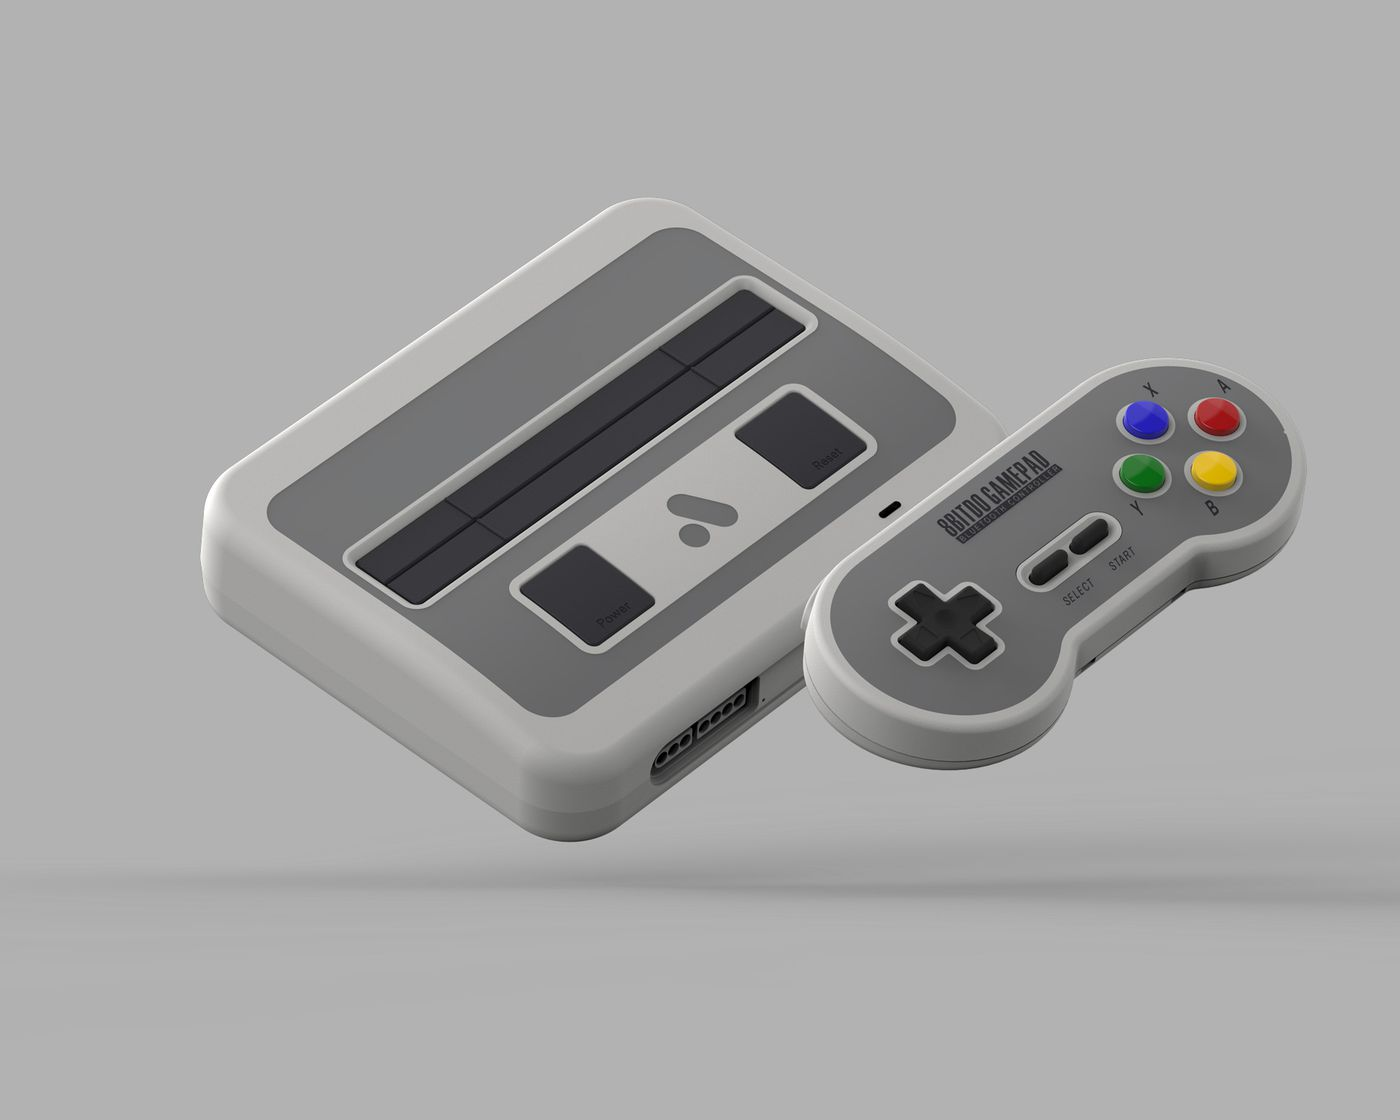 The Analogue Super Nt is a gorgeous machine for playing your